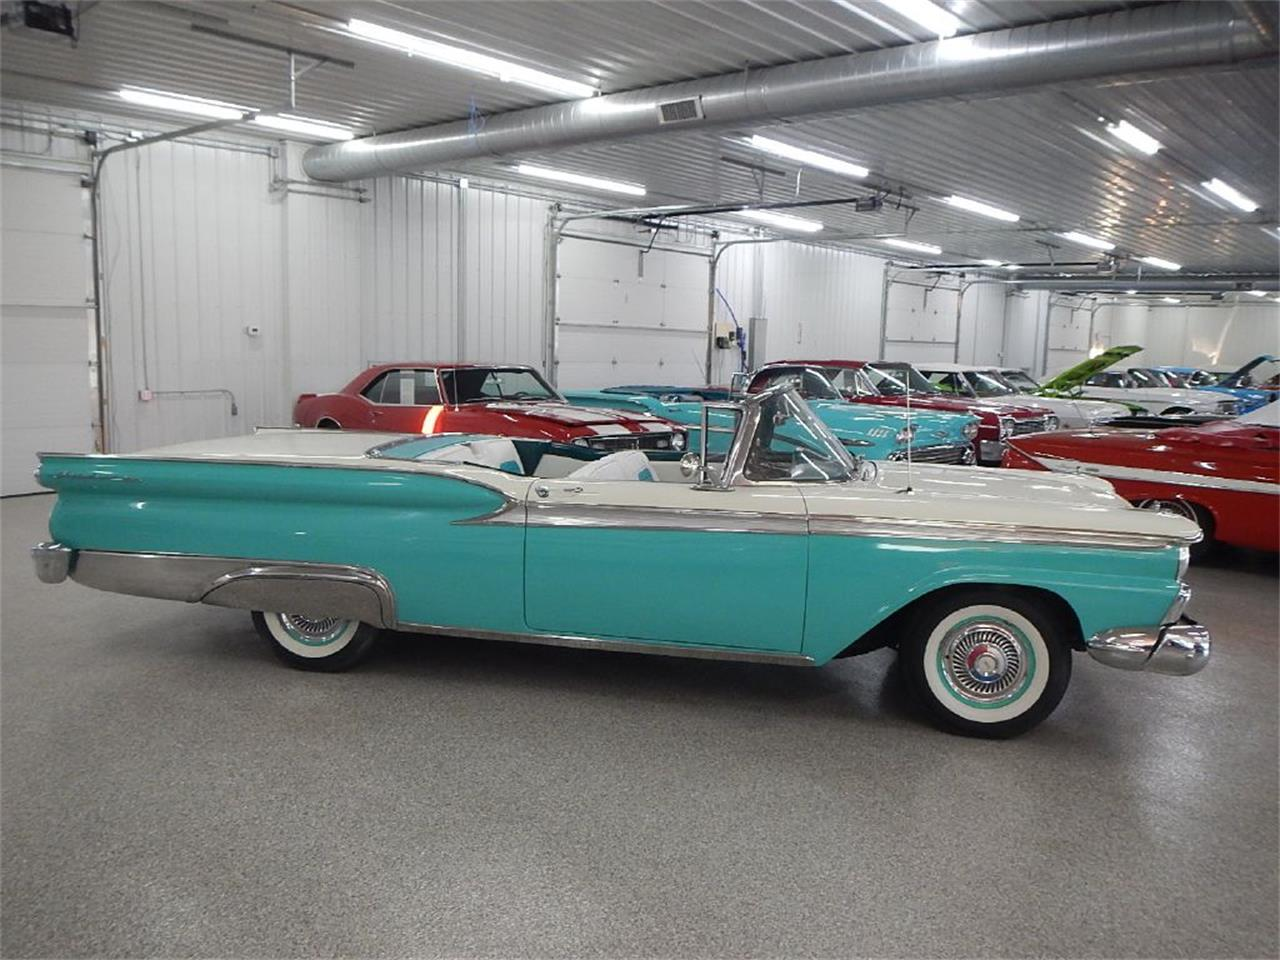 1959 Ford Fairlane 500 Skyliner (CC-1219329) for sale in Celina, Ohio